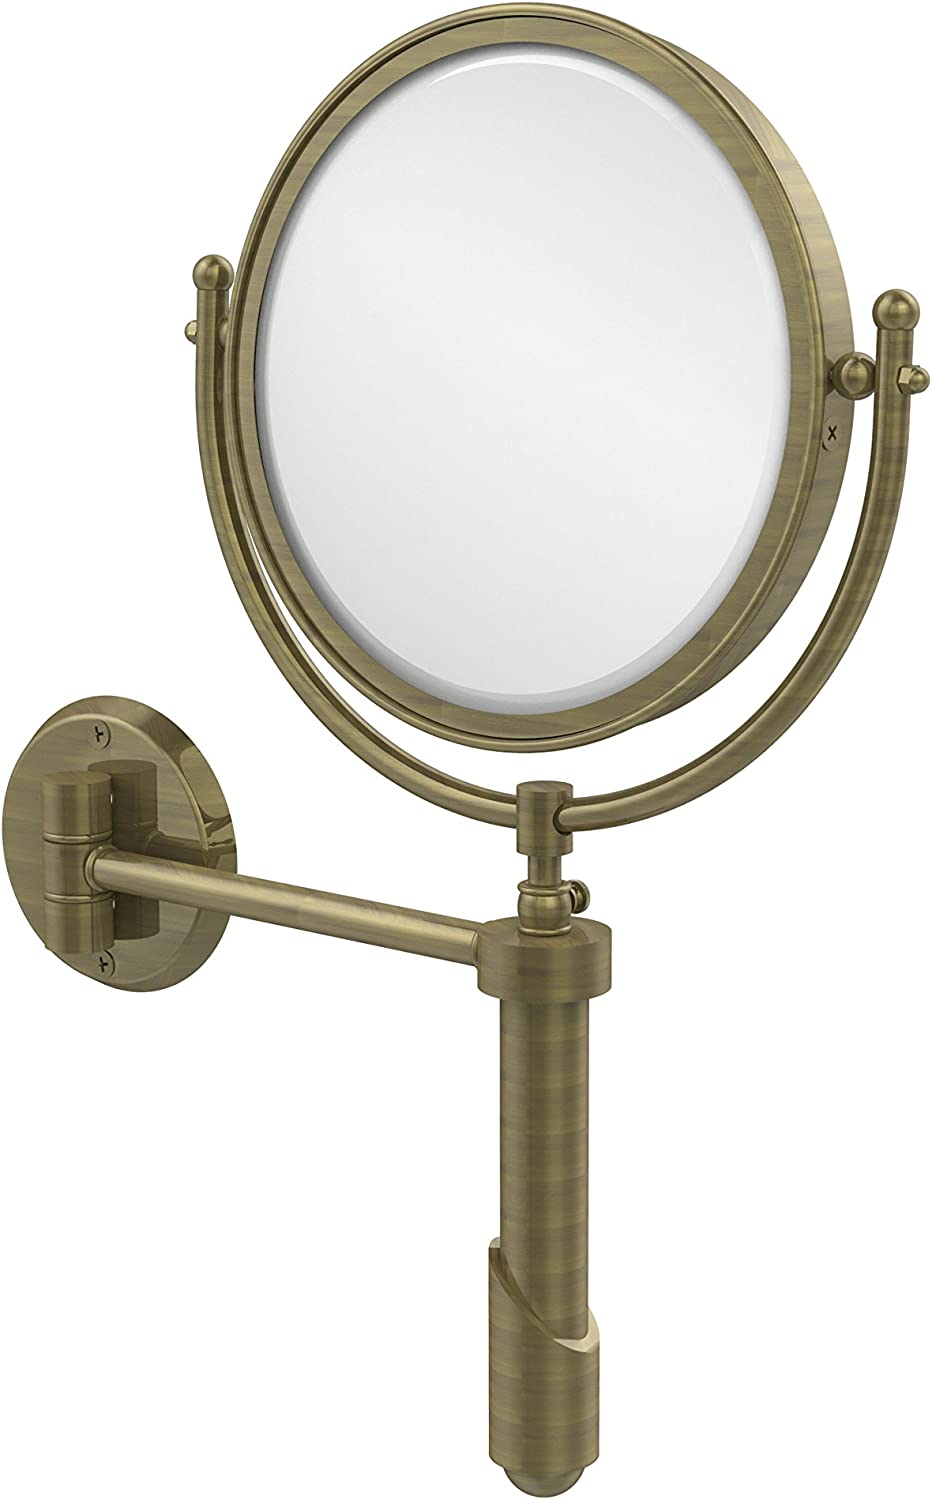 Allied Brass Soho Collection Wall Mounted Make-Up Mirror 8 Inch Diameter with 3X Magnification, SHM-8 3X-ABR